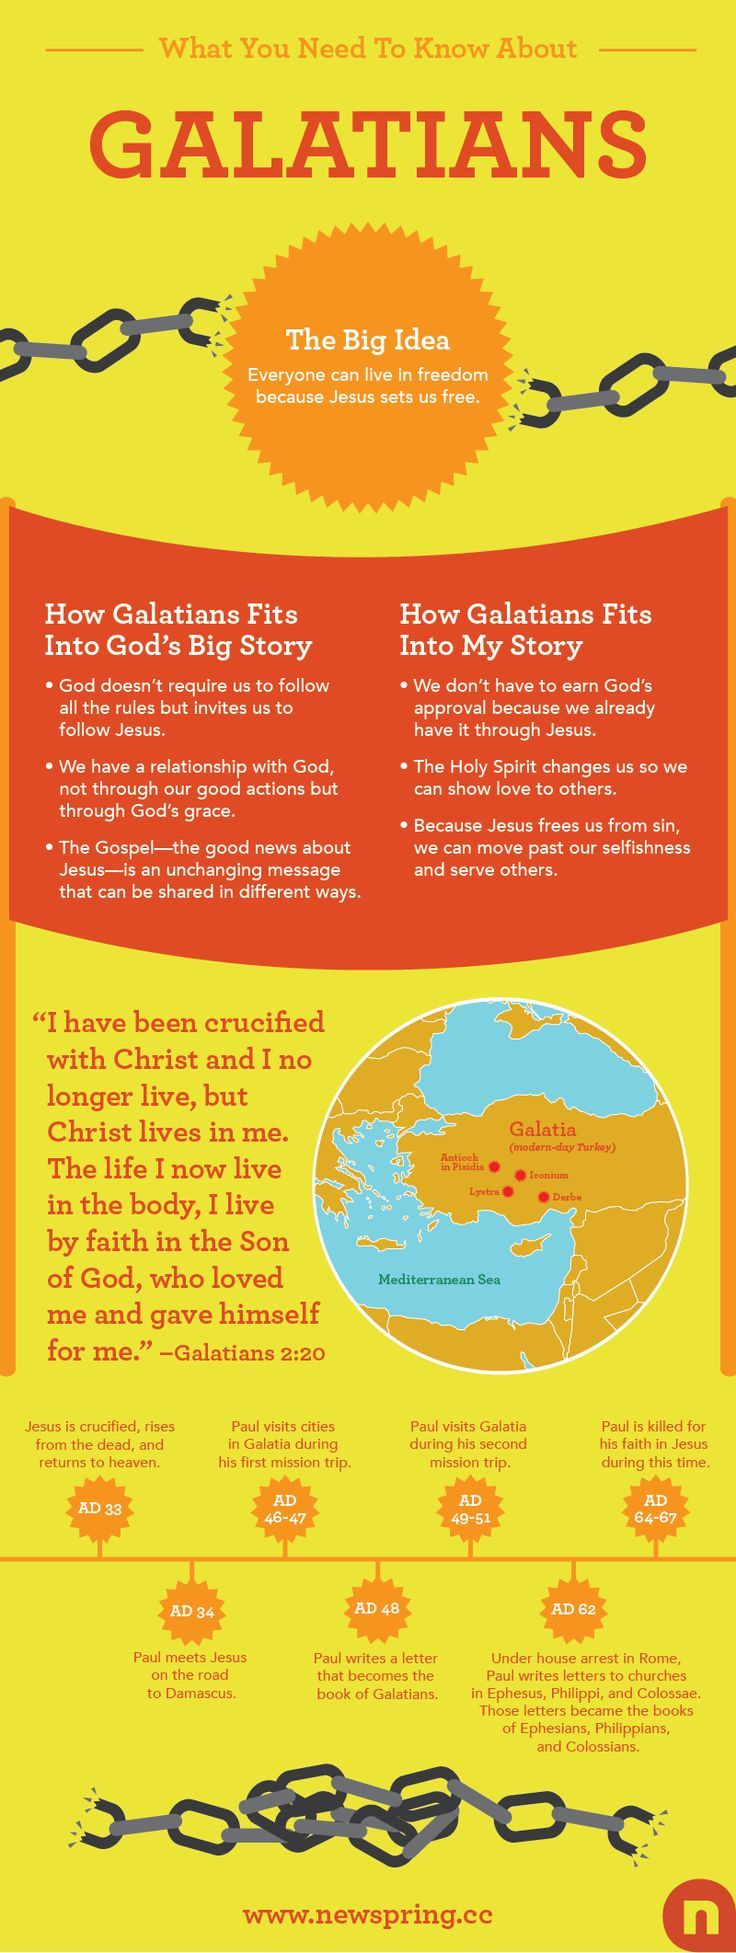 Everything You Need To Know About Galatians